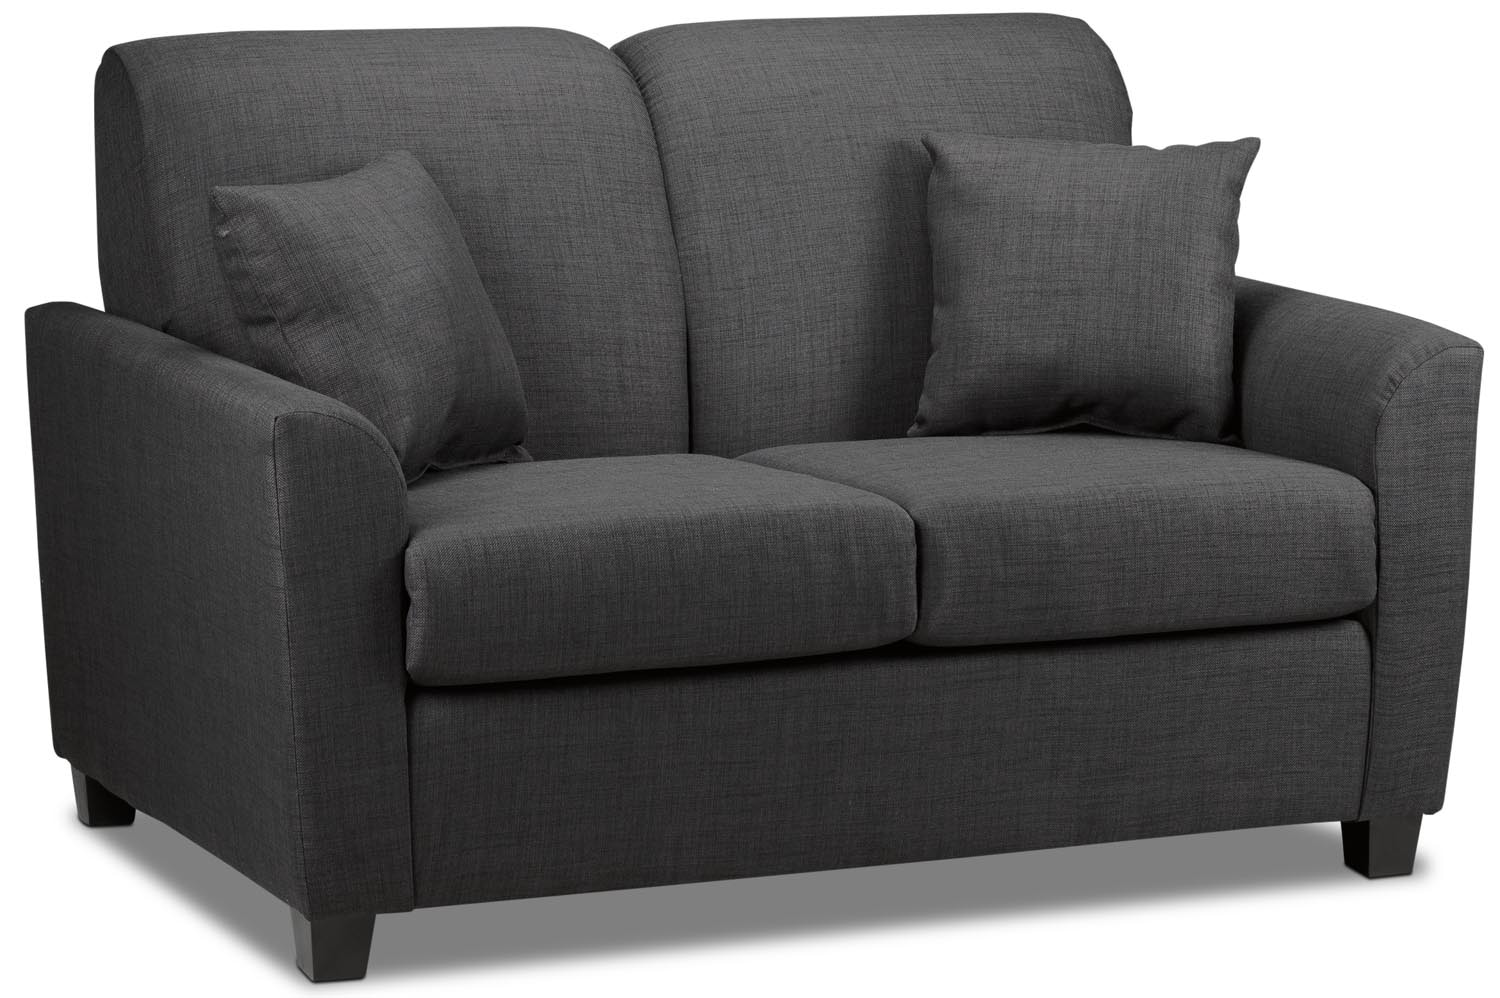 Living Room Furniture - Roxanne Loveseat - Charcoal